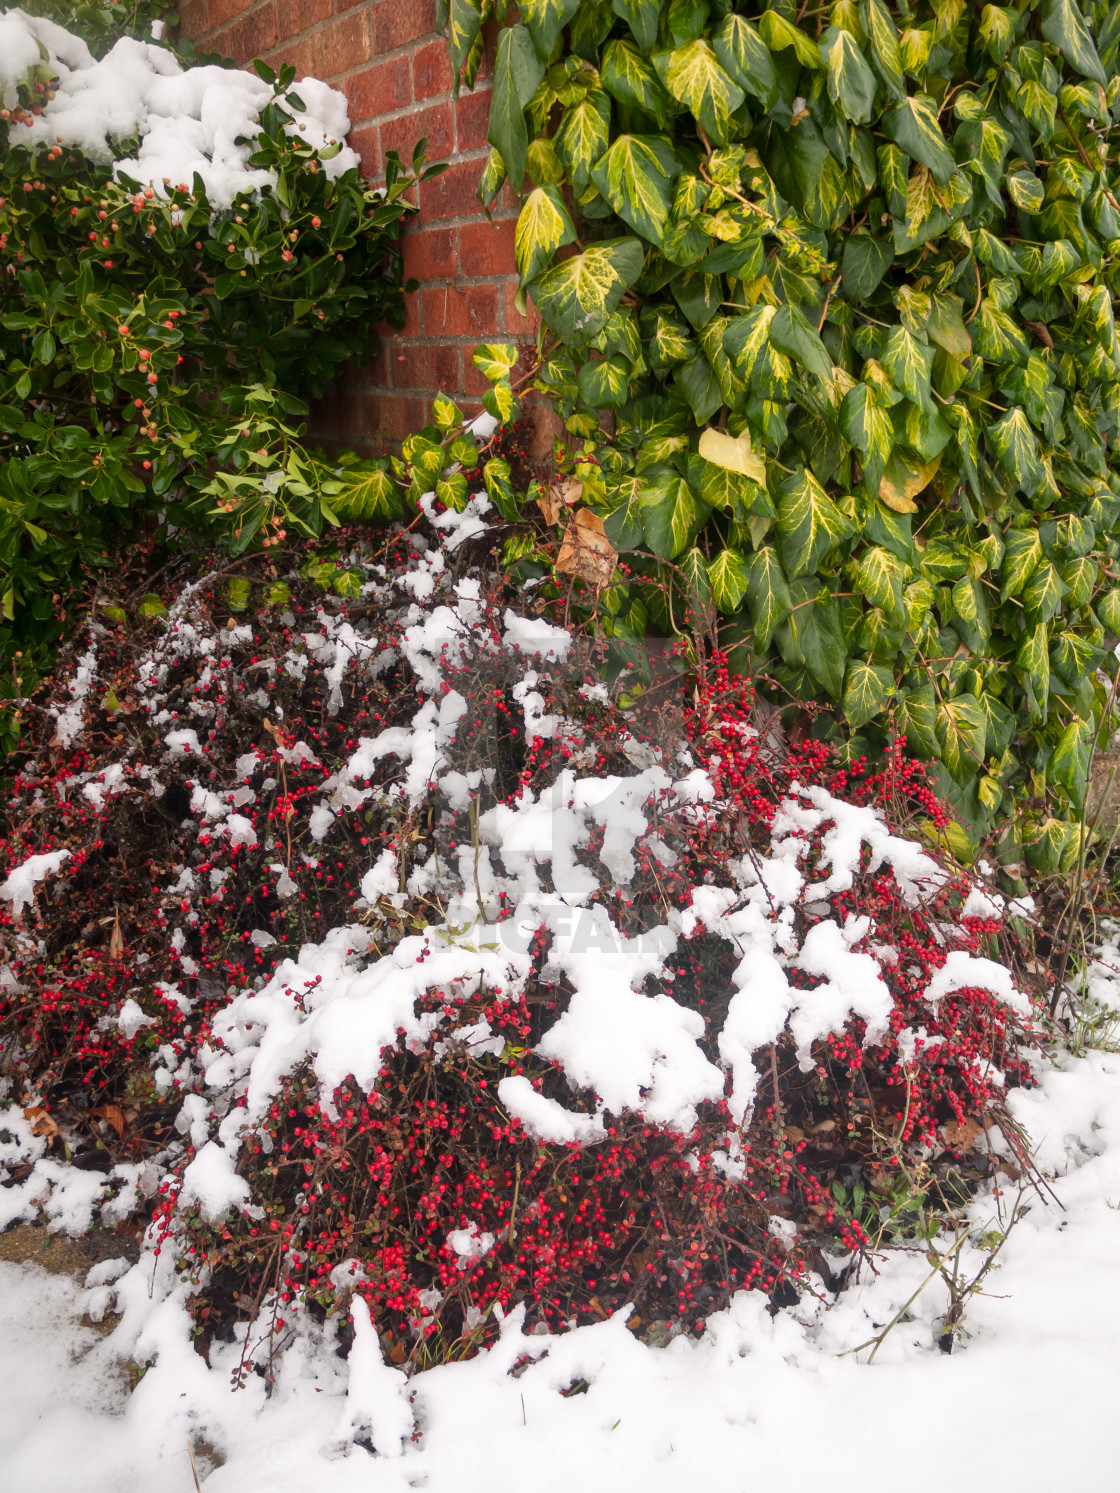 Snow On Red Berry Bush Outside On Floor Winter License Download